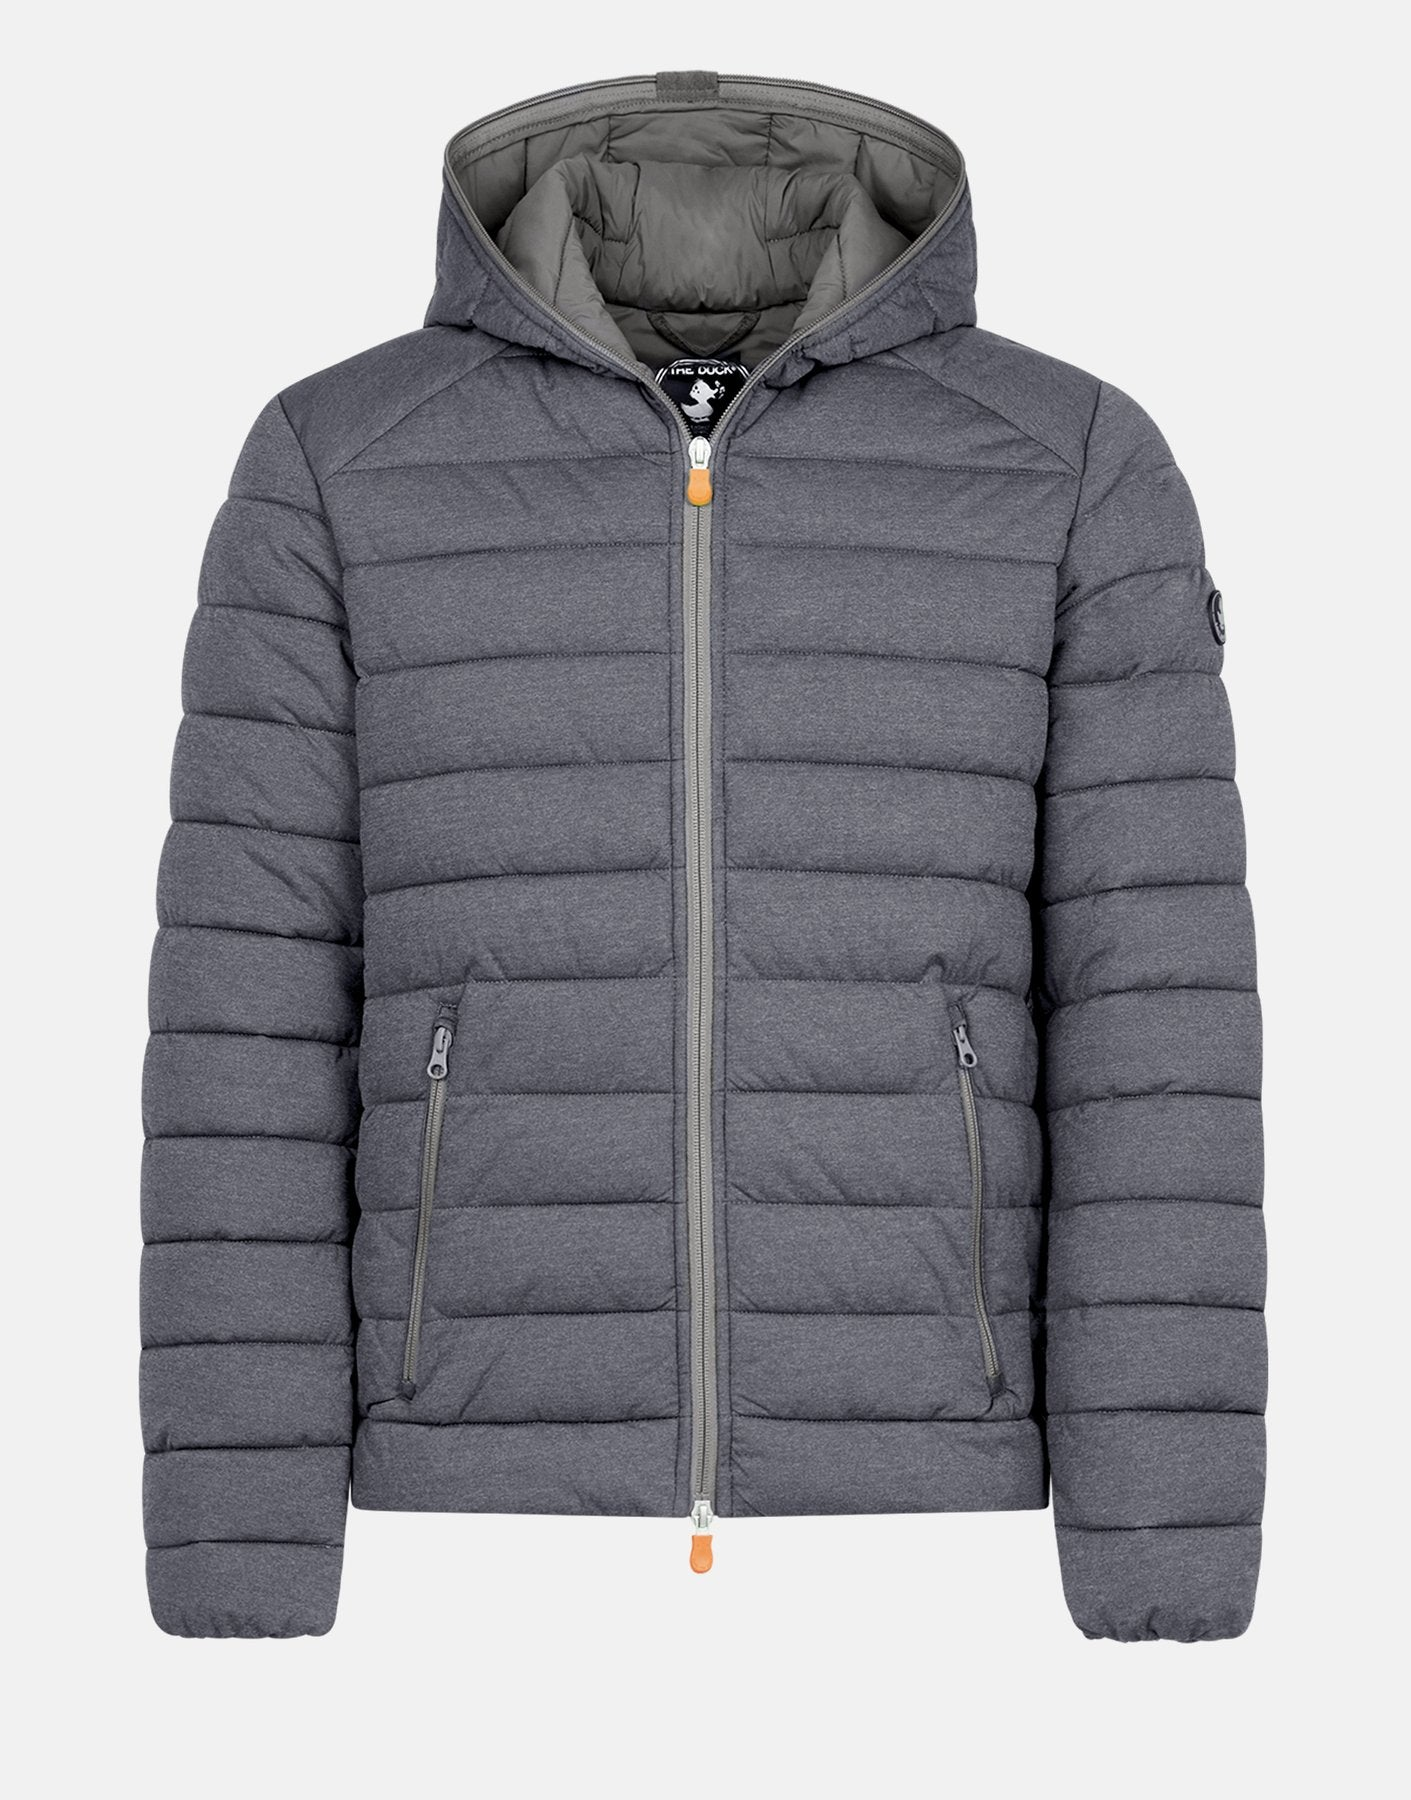 See this material featured on the Men's ANGY Hooded Puffer Jacket.